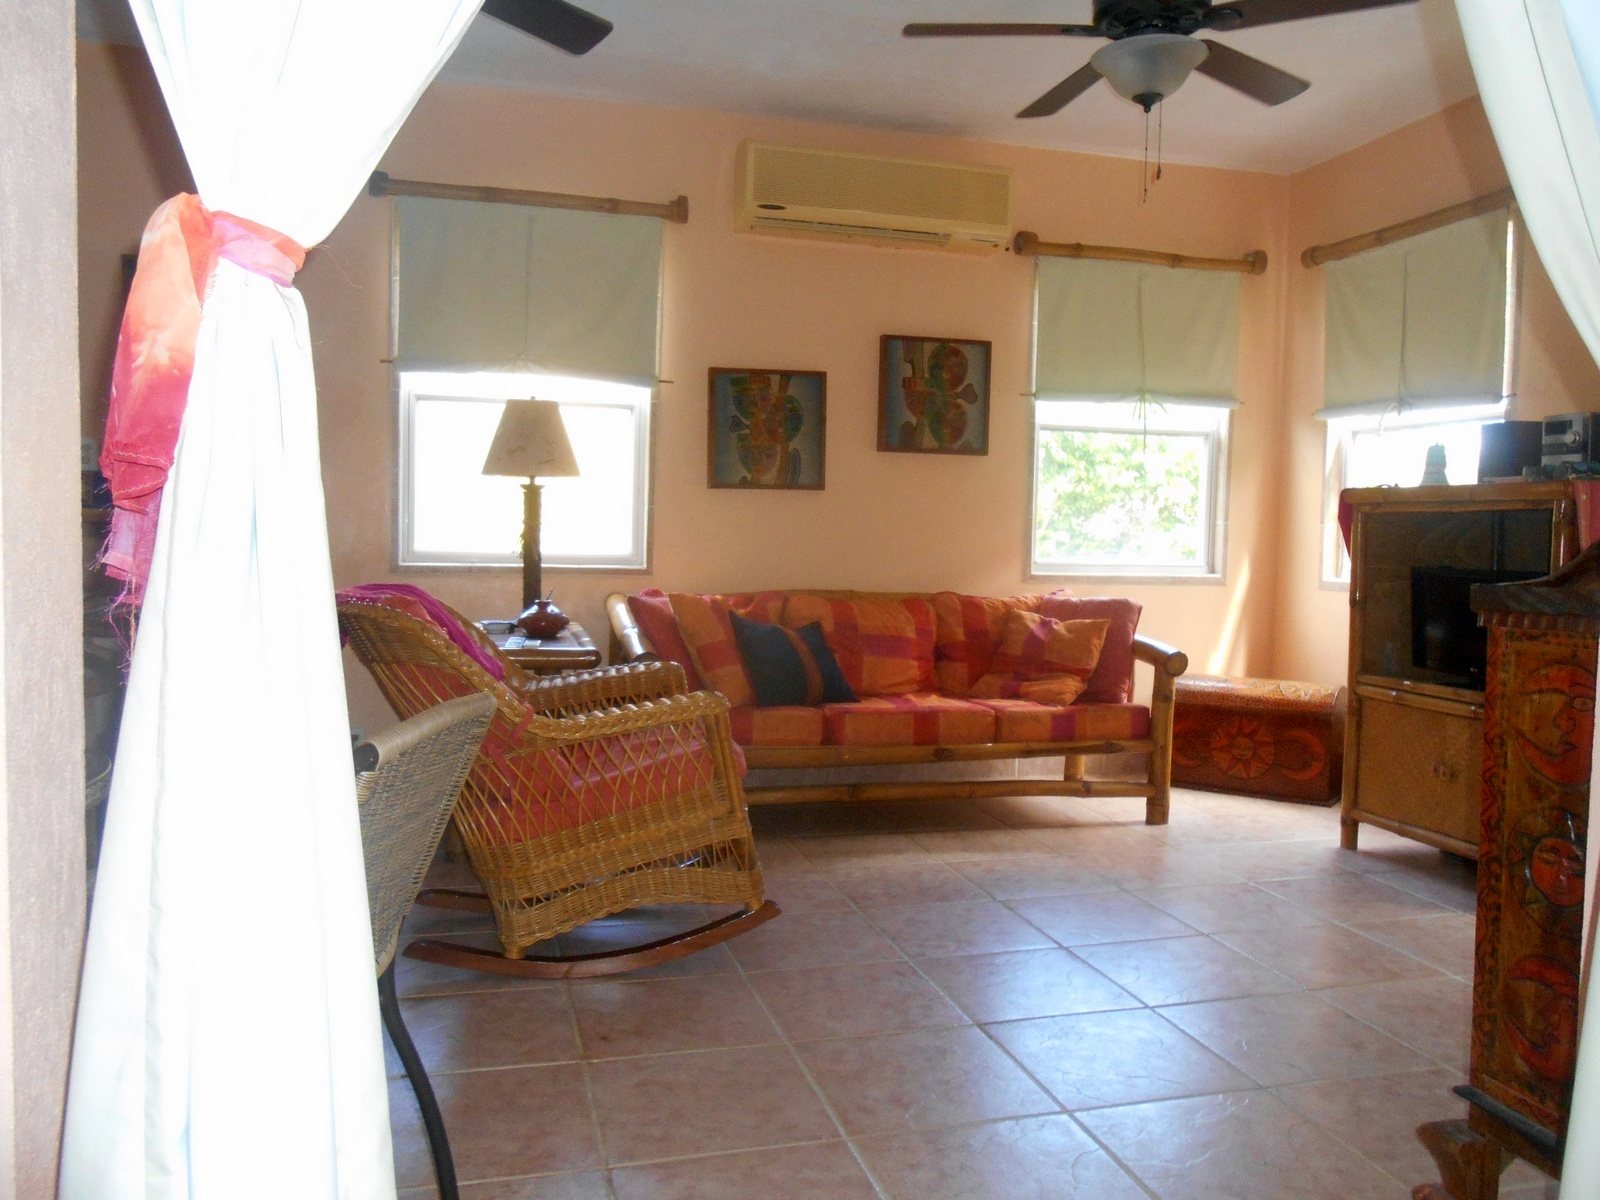 Multi-Family Home for Sale at Pepperoni's San Pedro Town, Ambergris Caye, Belize